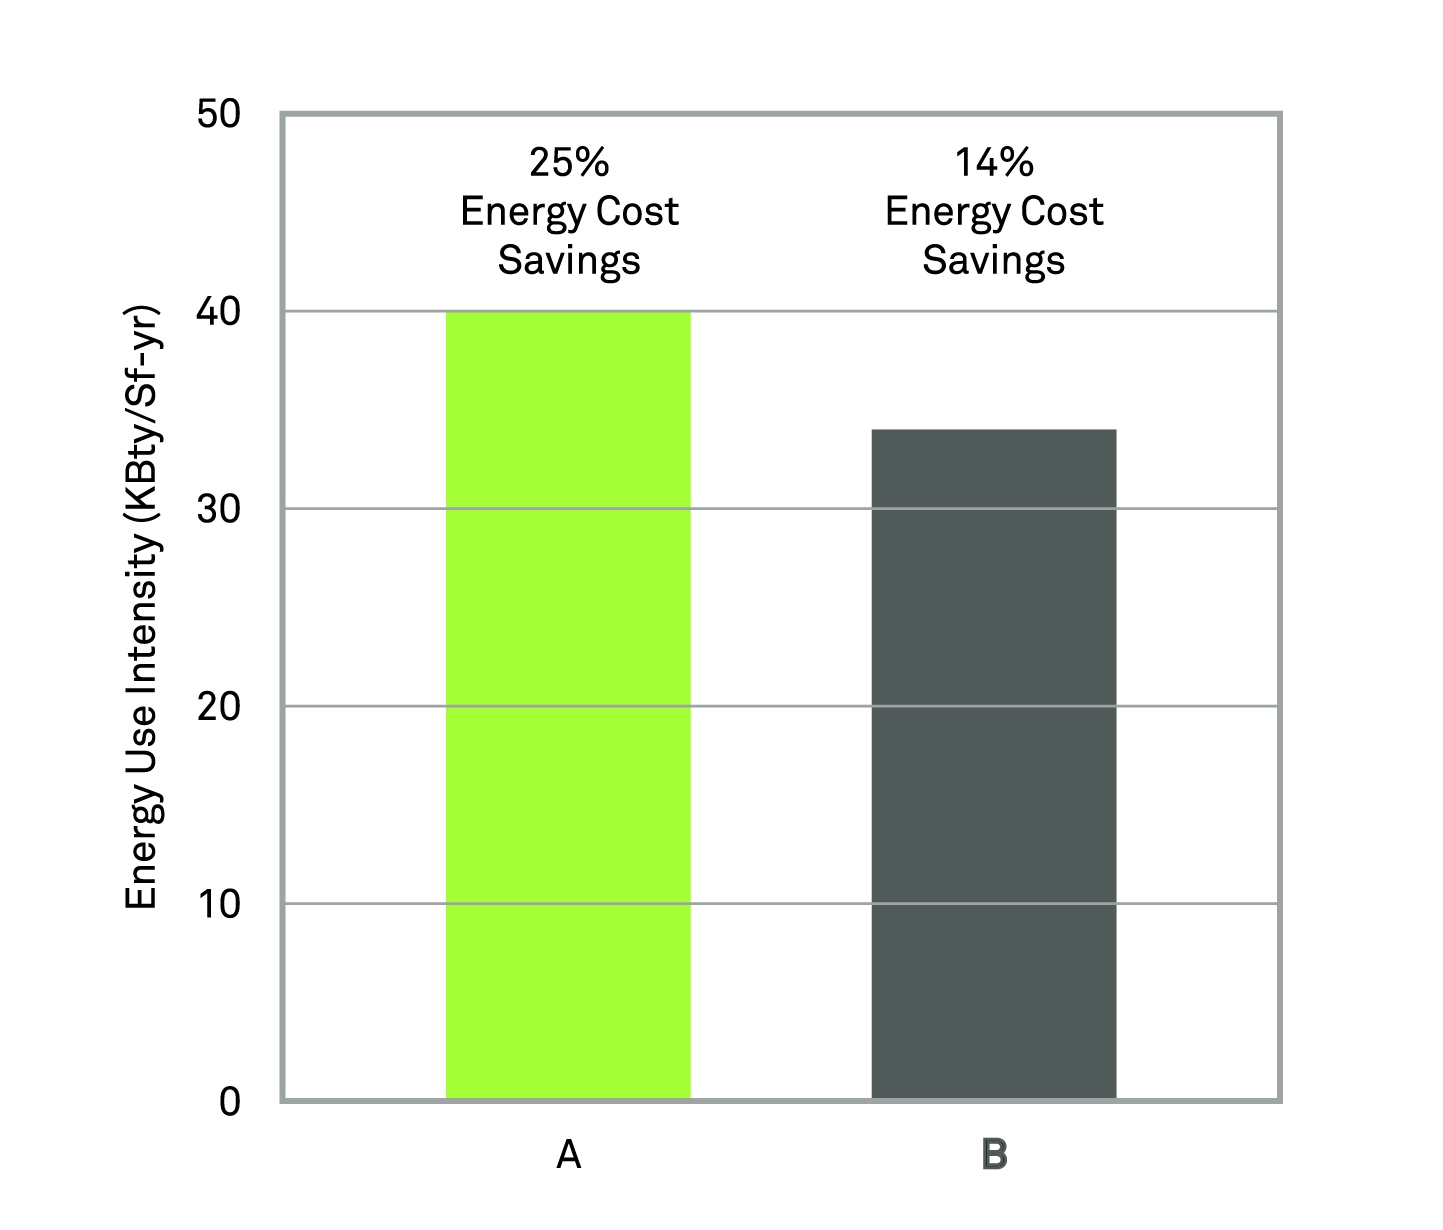 Energy Cost Savings diagram for Glass building design.